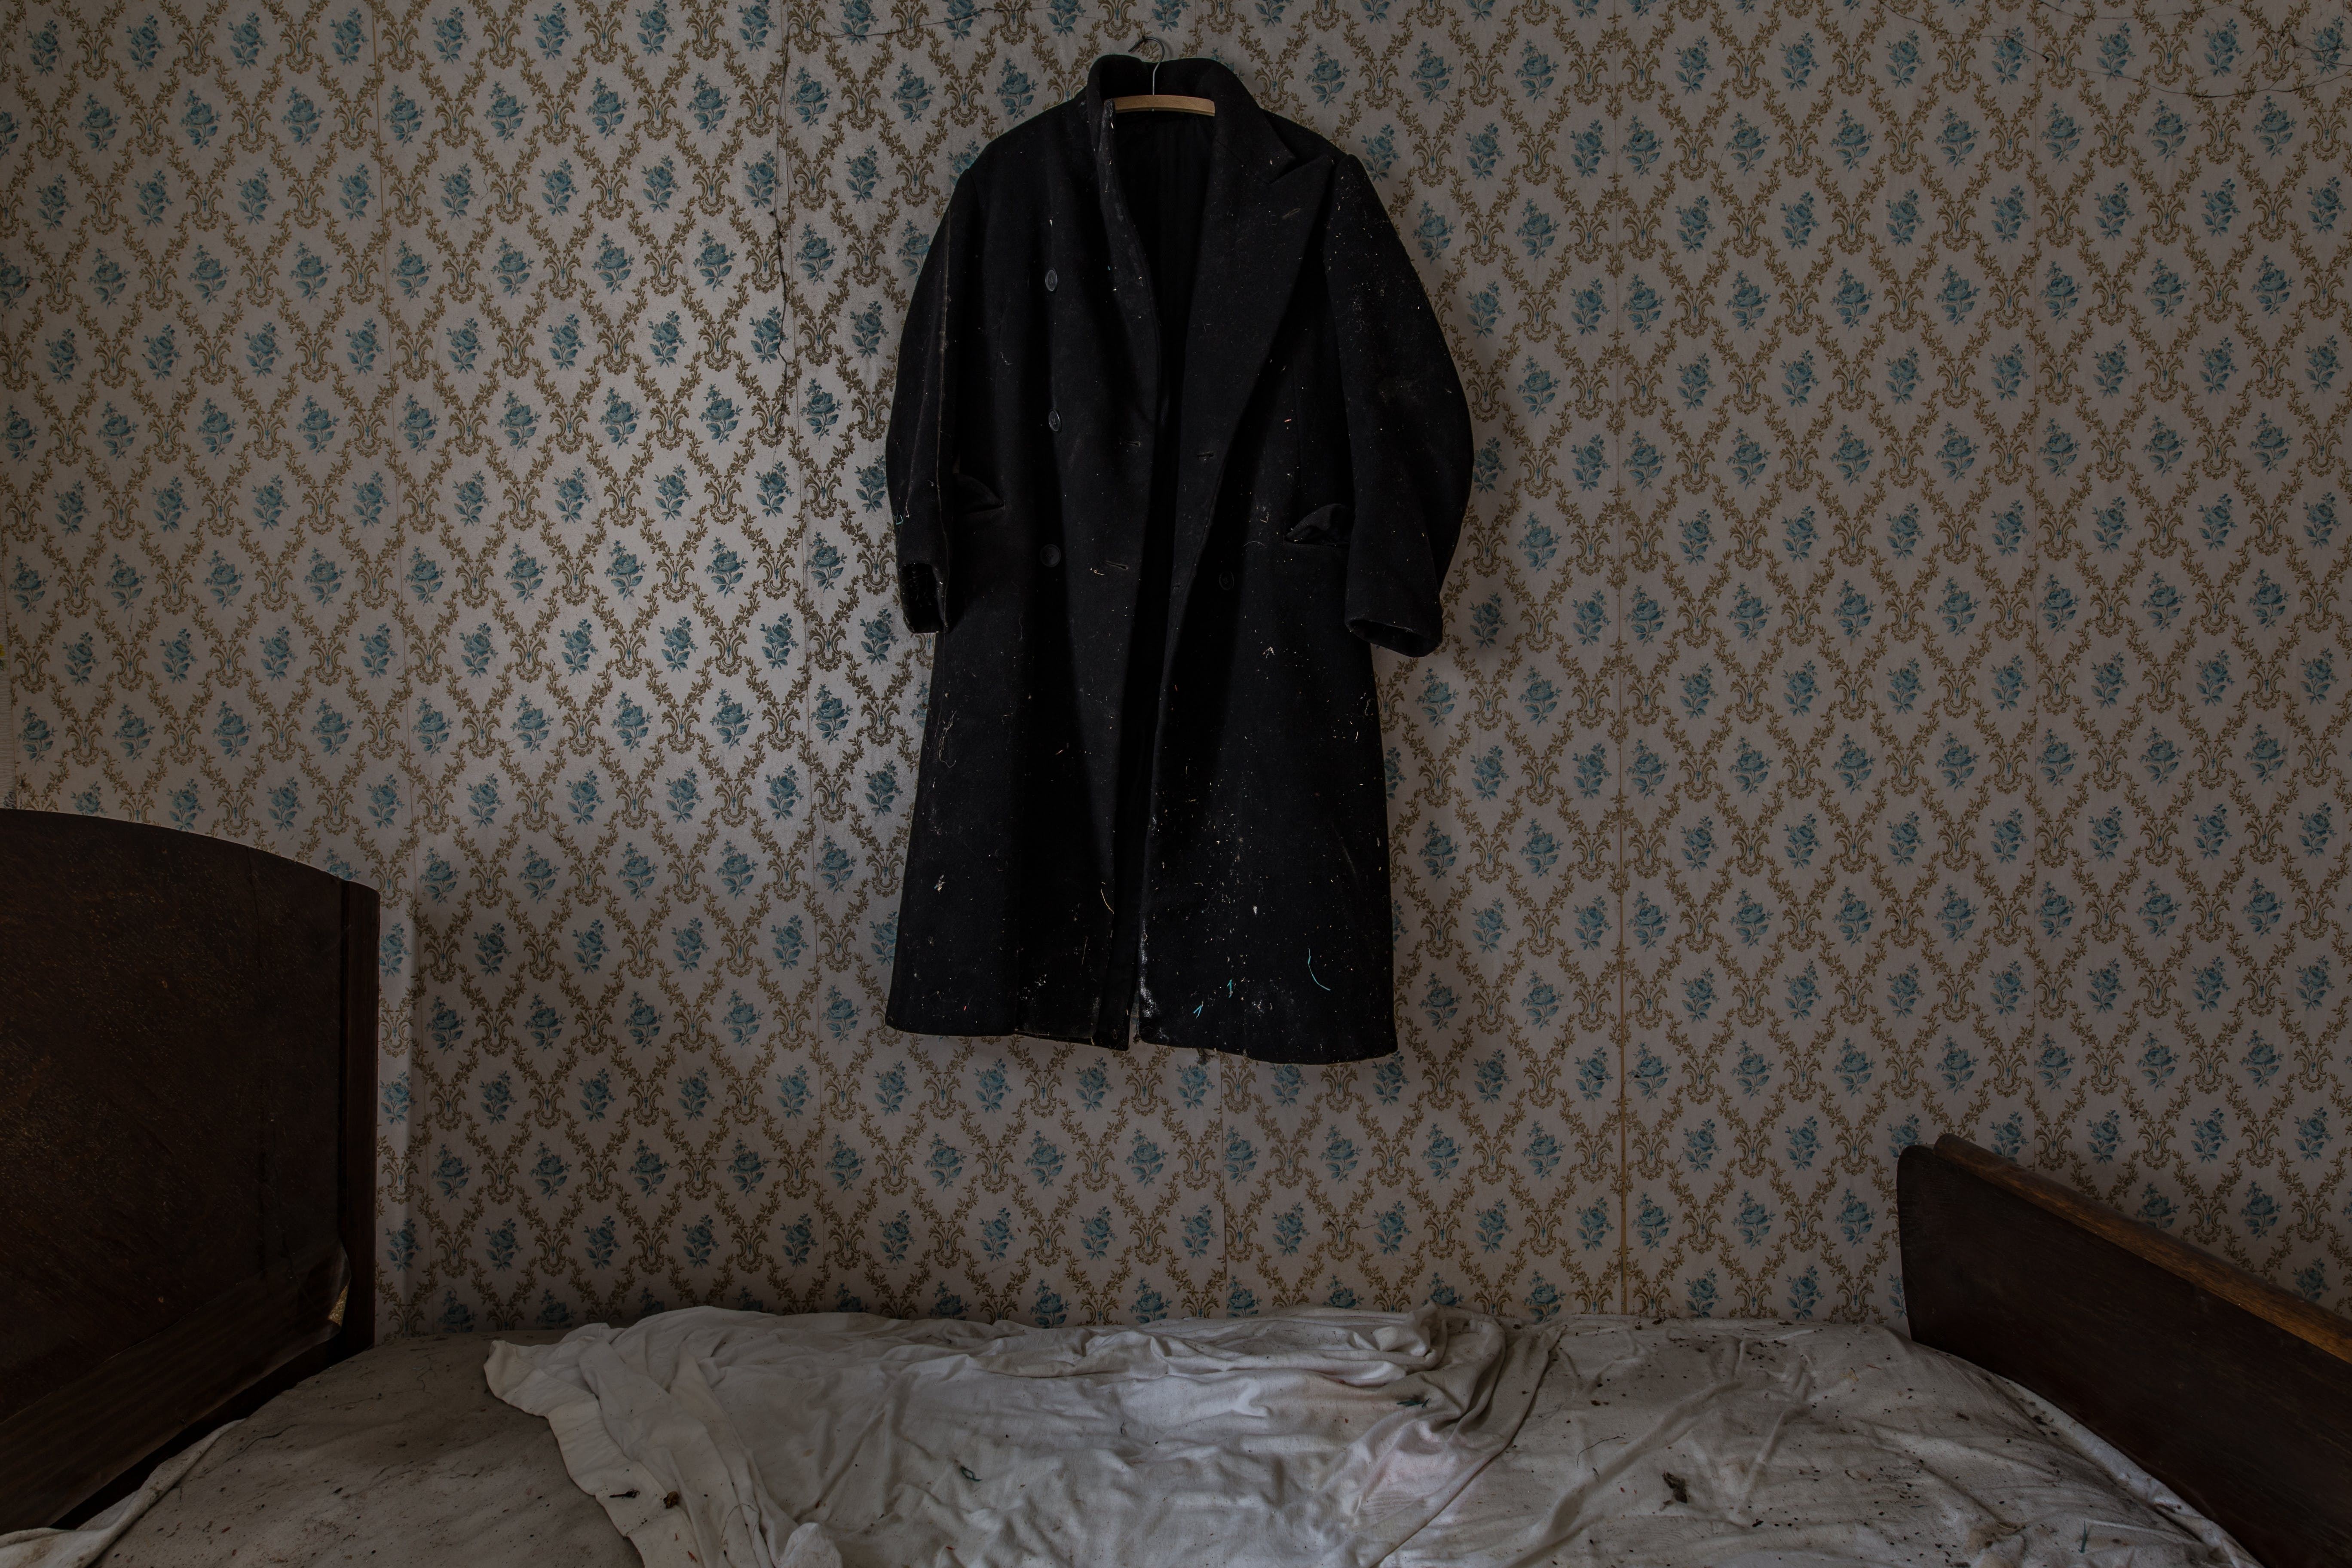 Black Coat Hanging on Wall